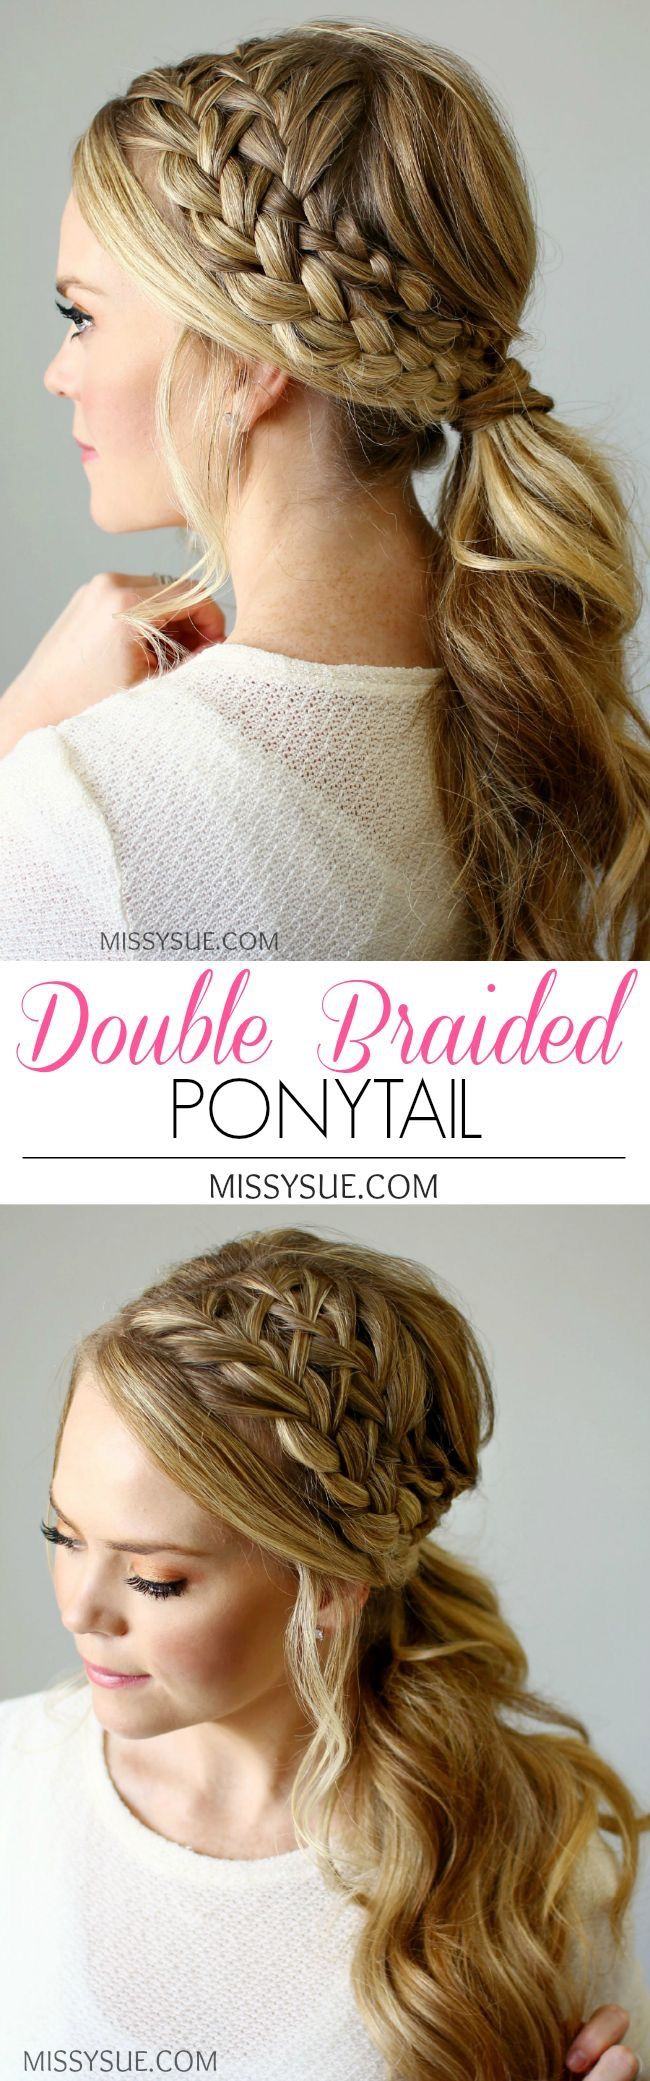 Double braided ponytail take pinterest ponytail hair style